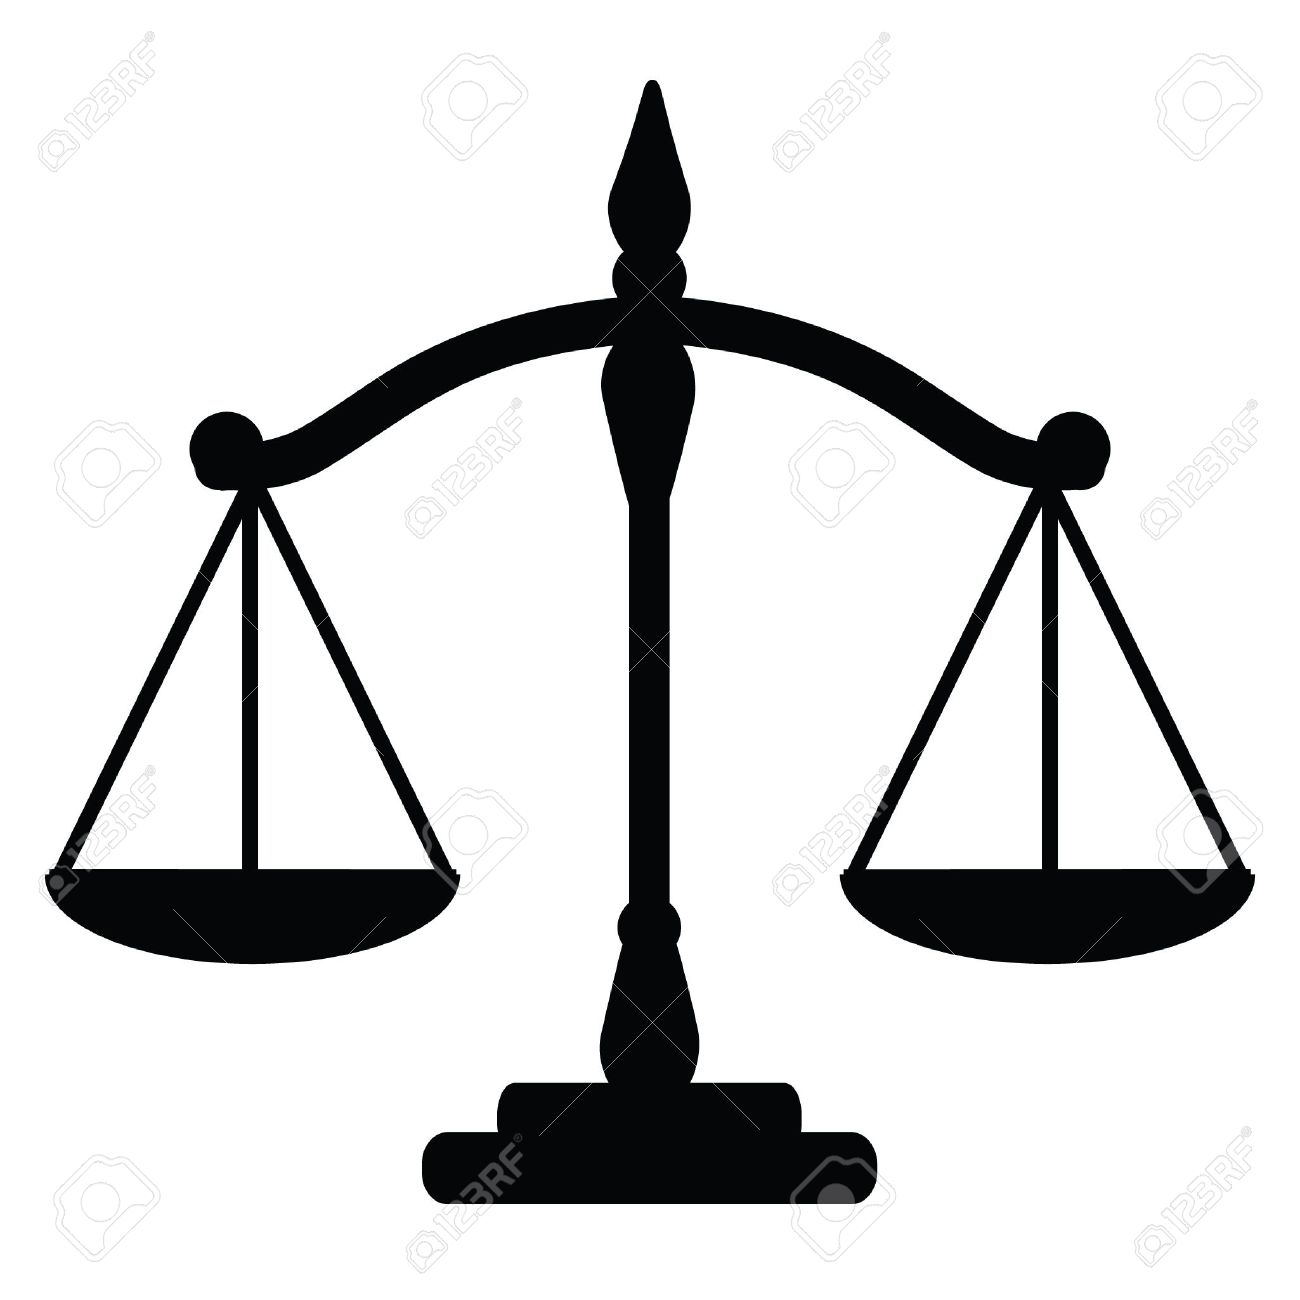 Vector Illustration Of Justice Scales Royalty Free Cliparts ...